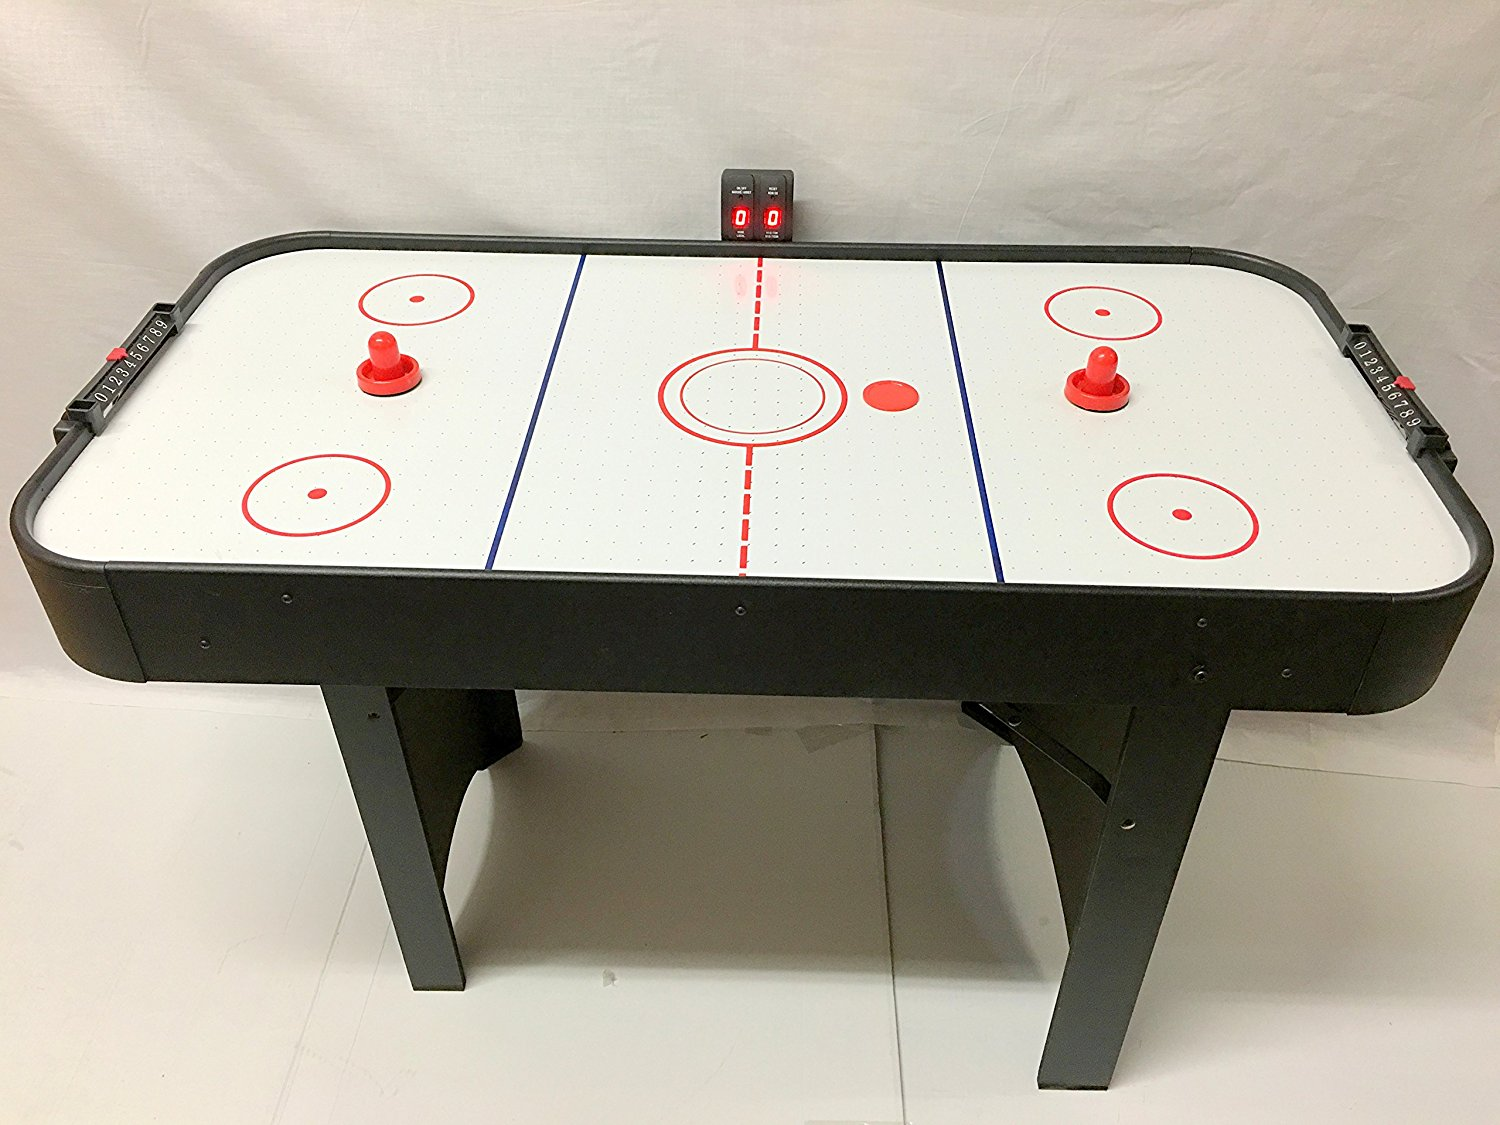 Rainforest 46 Inch Air Hockey Table Image